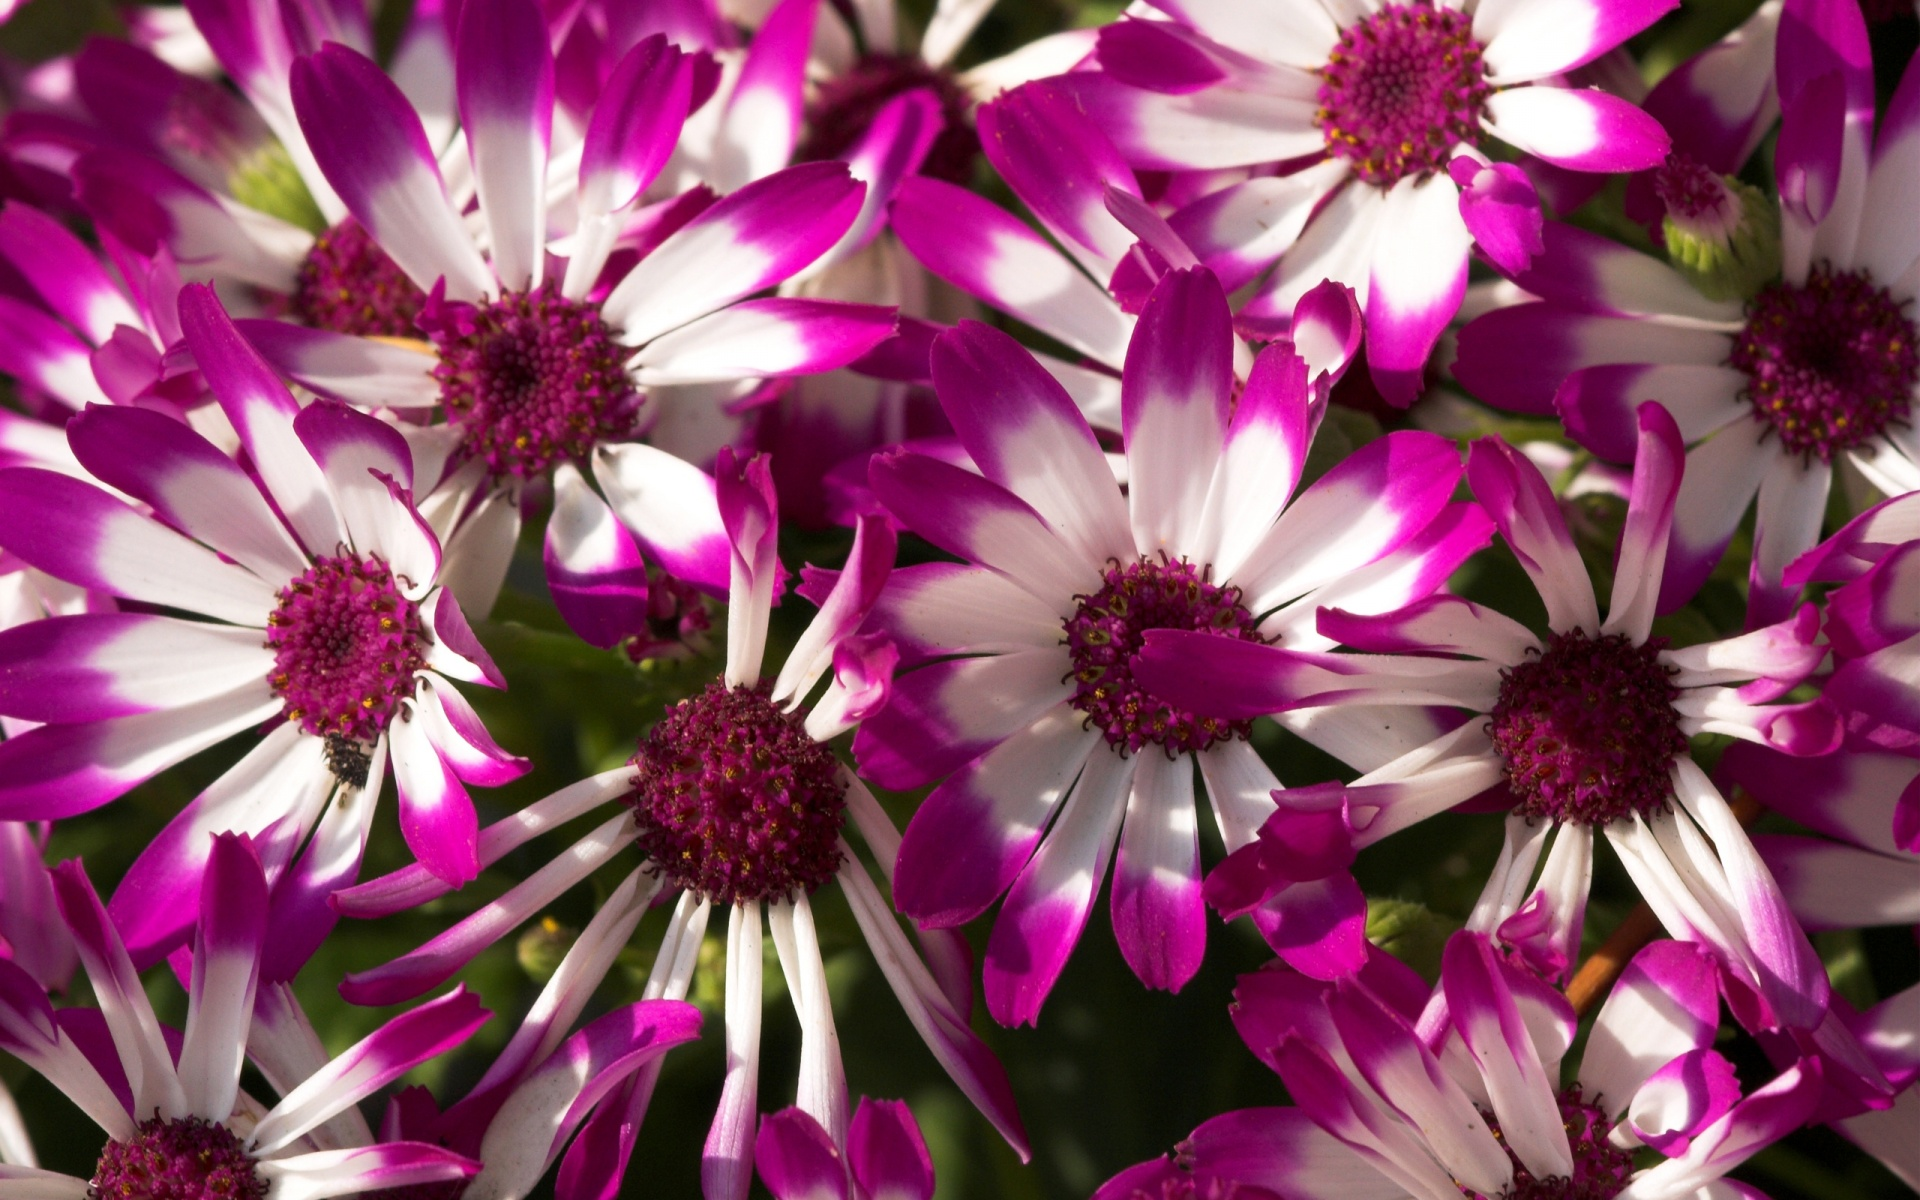 beautiful purple flowers wallpapers in jpg format for free download, Beautiful flower